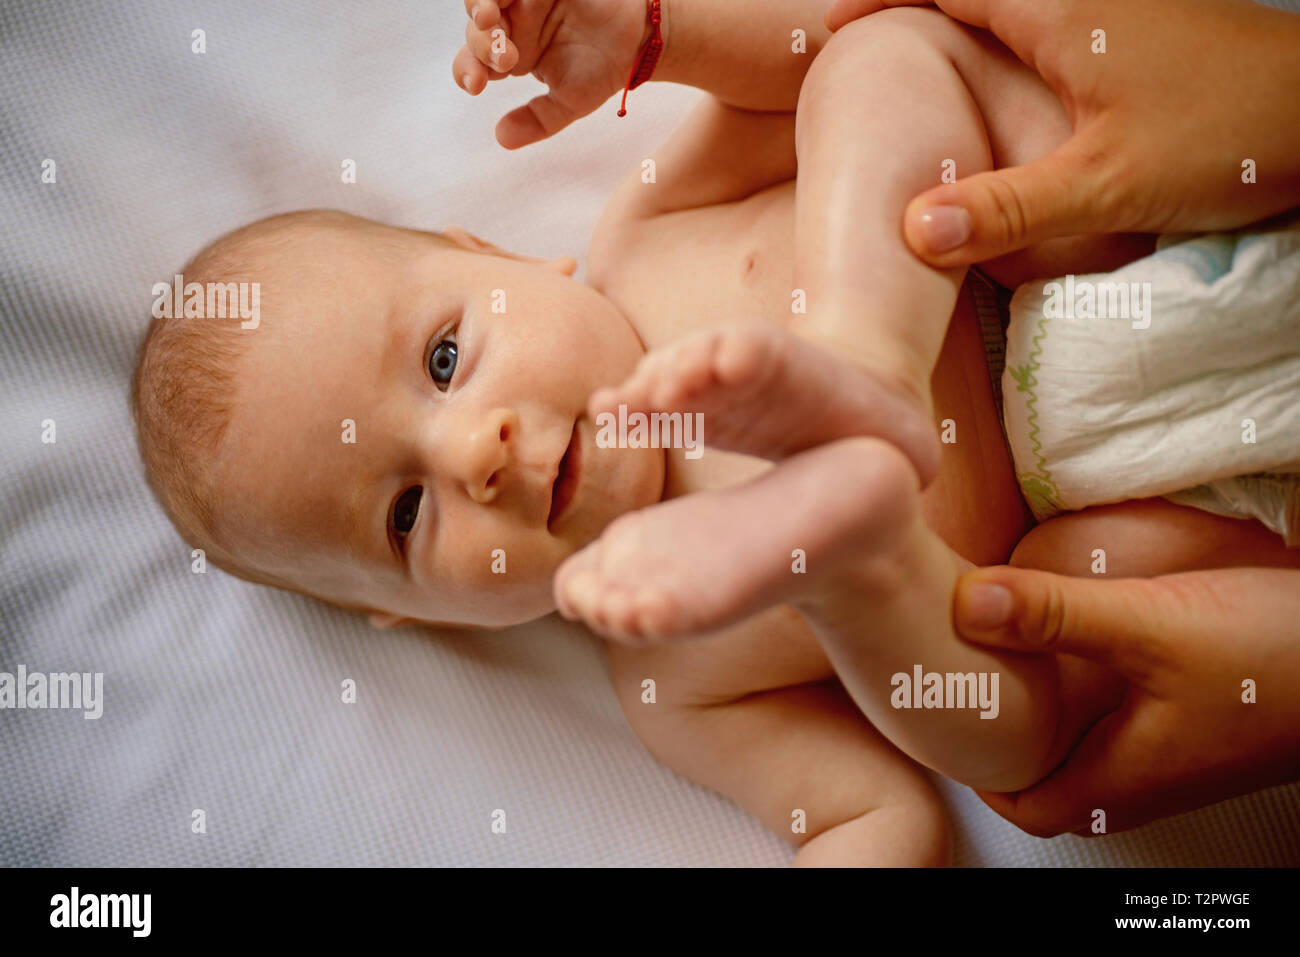 Newborn baby. Family care of newborn baby. Family love and care. Infant developmental psychology. Psychology of babies. Insight into infant minds. Car - Stock Image